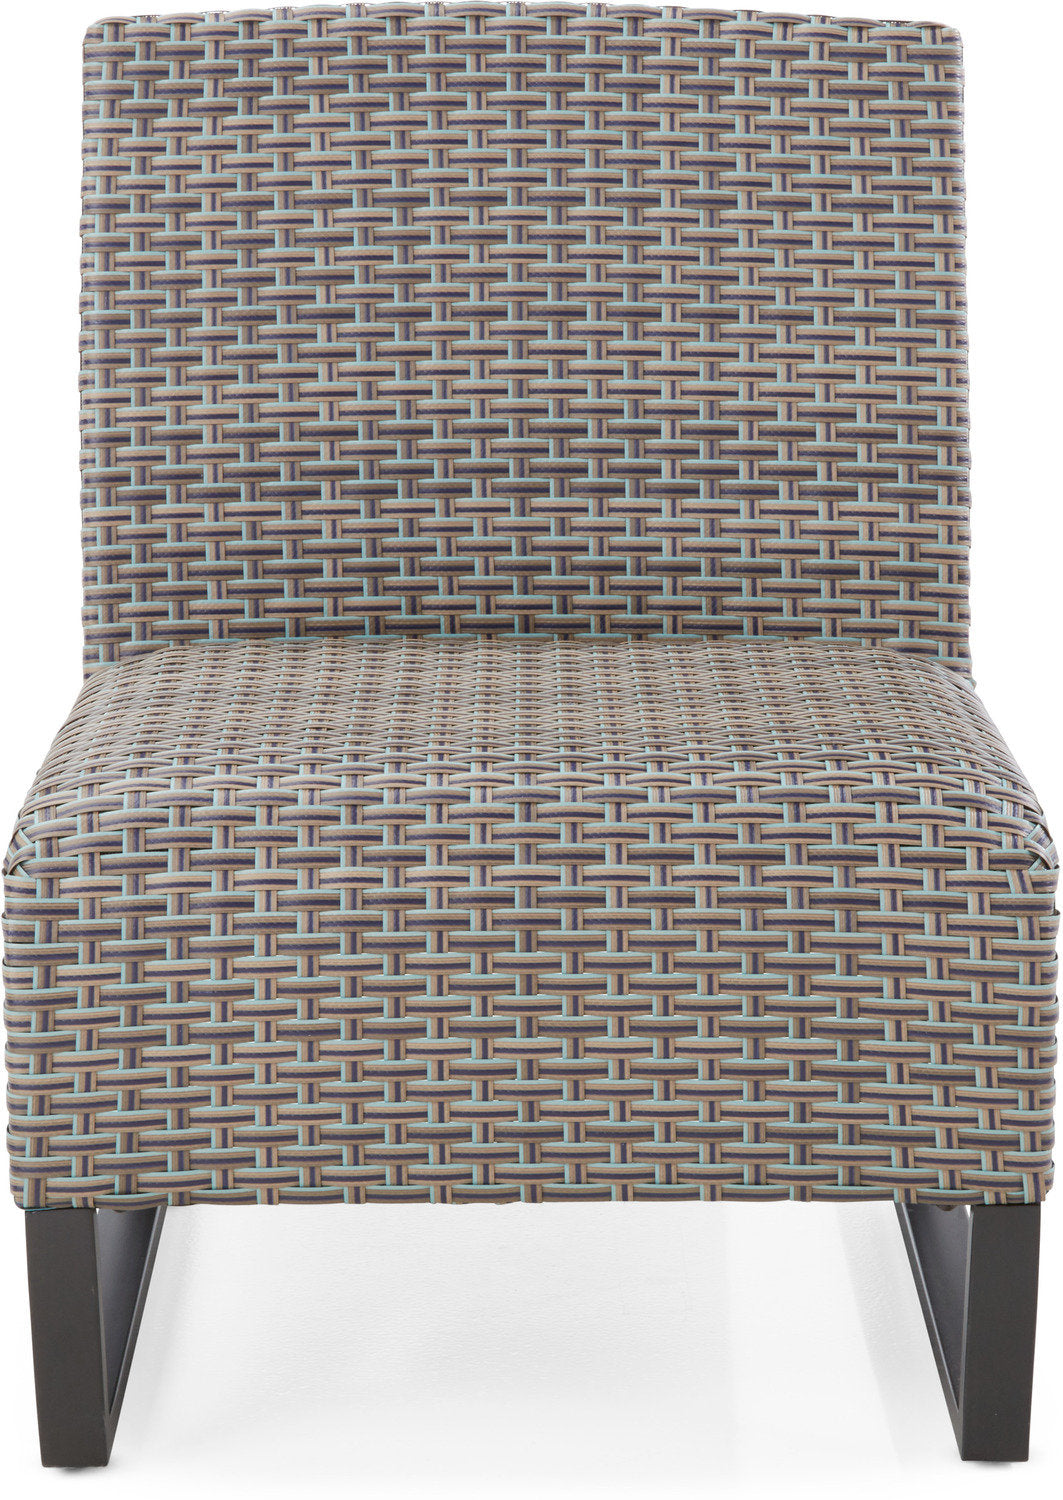 Del Mar Outdoor Armless Chair - Grey and Blue - Del Mar Outdoor Armless Chair - Grey And Blue Leon's